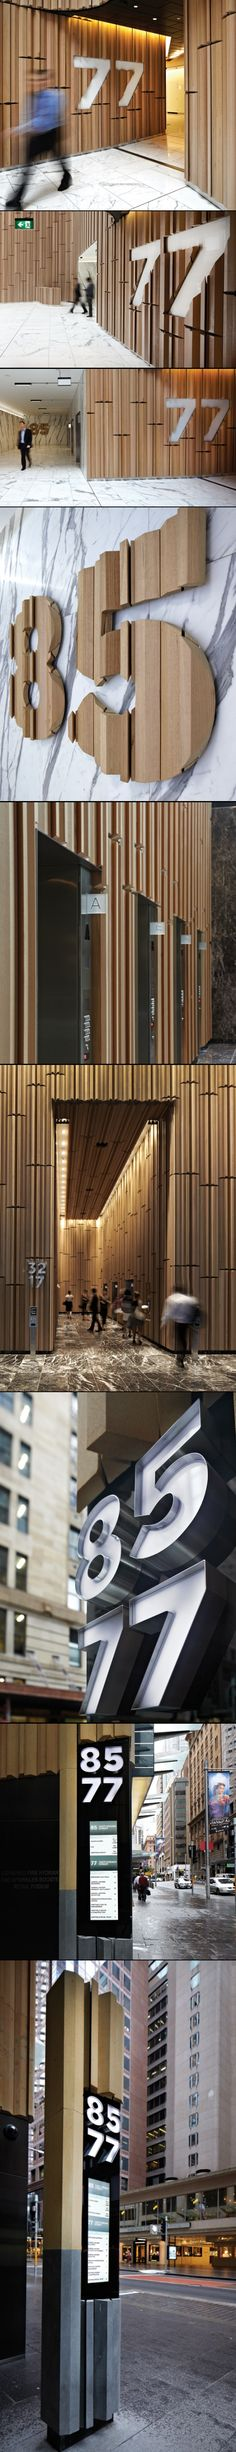 77-85 Castlereagh St, Australia by Büro North 2012 / 인테리어 소재에 따라서.